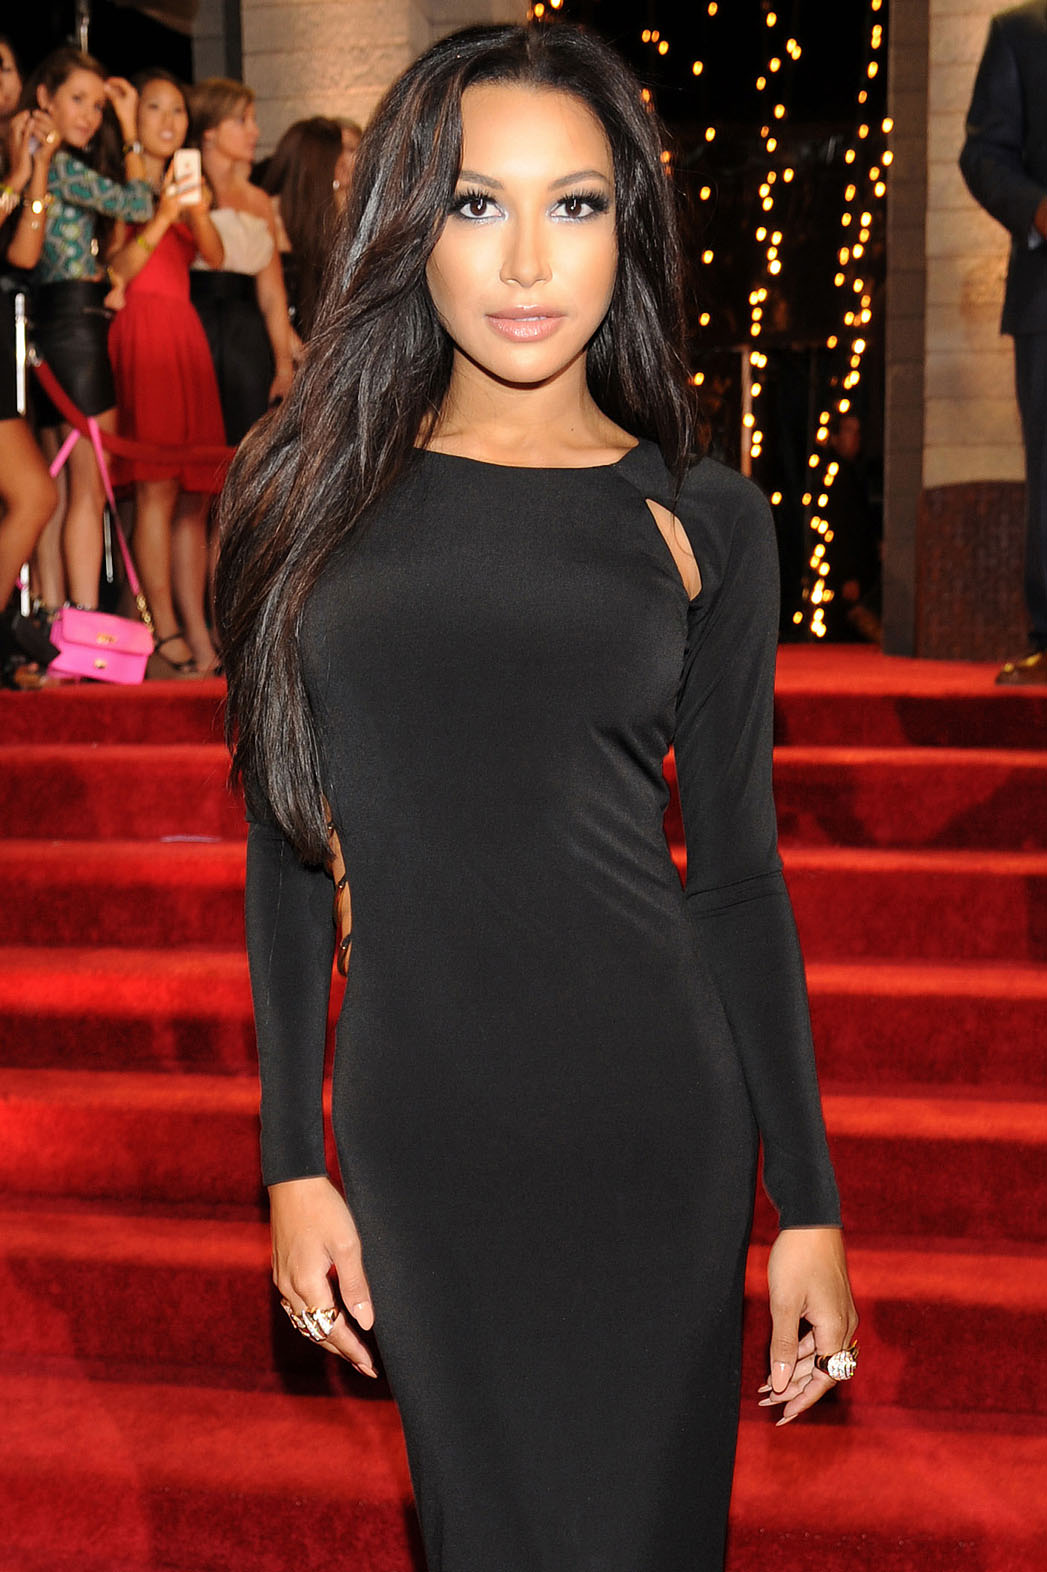 naya rivera marvelous look images